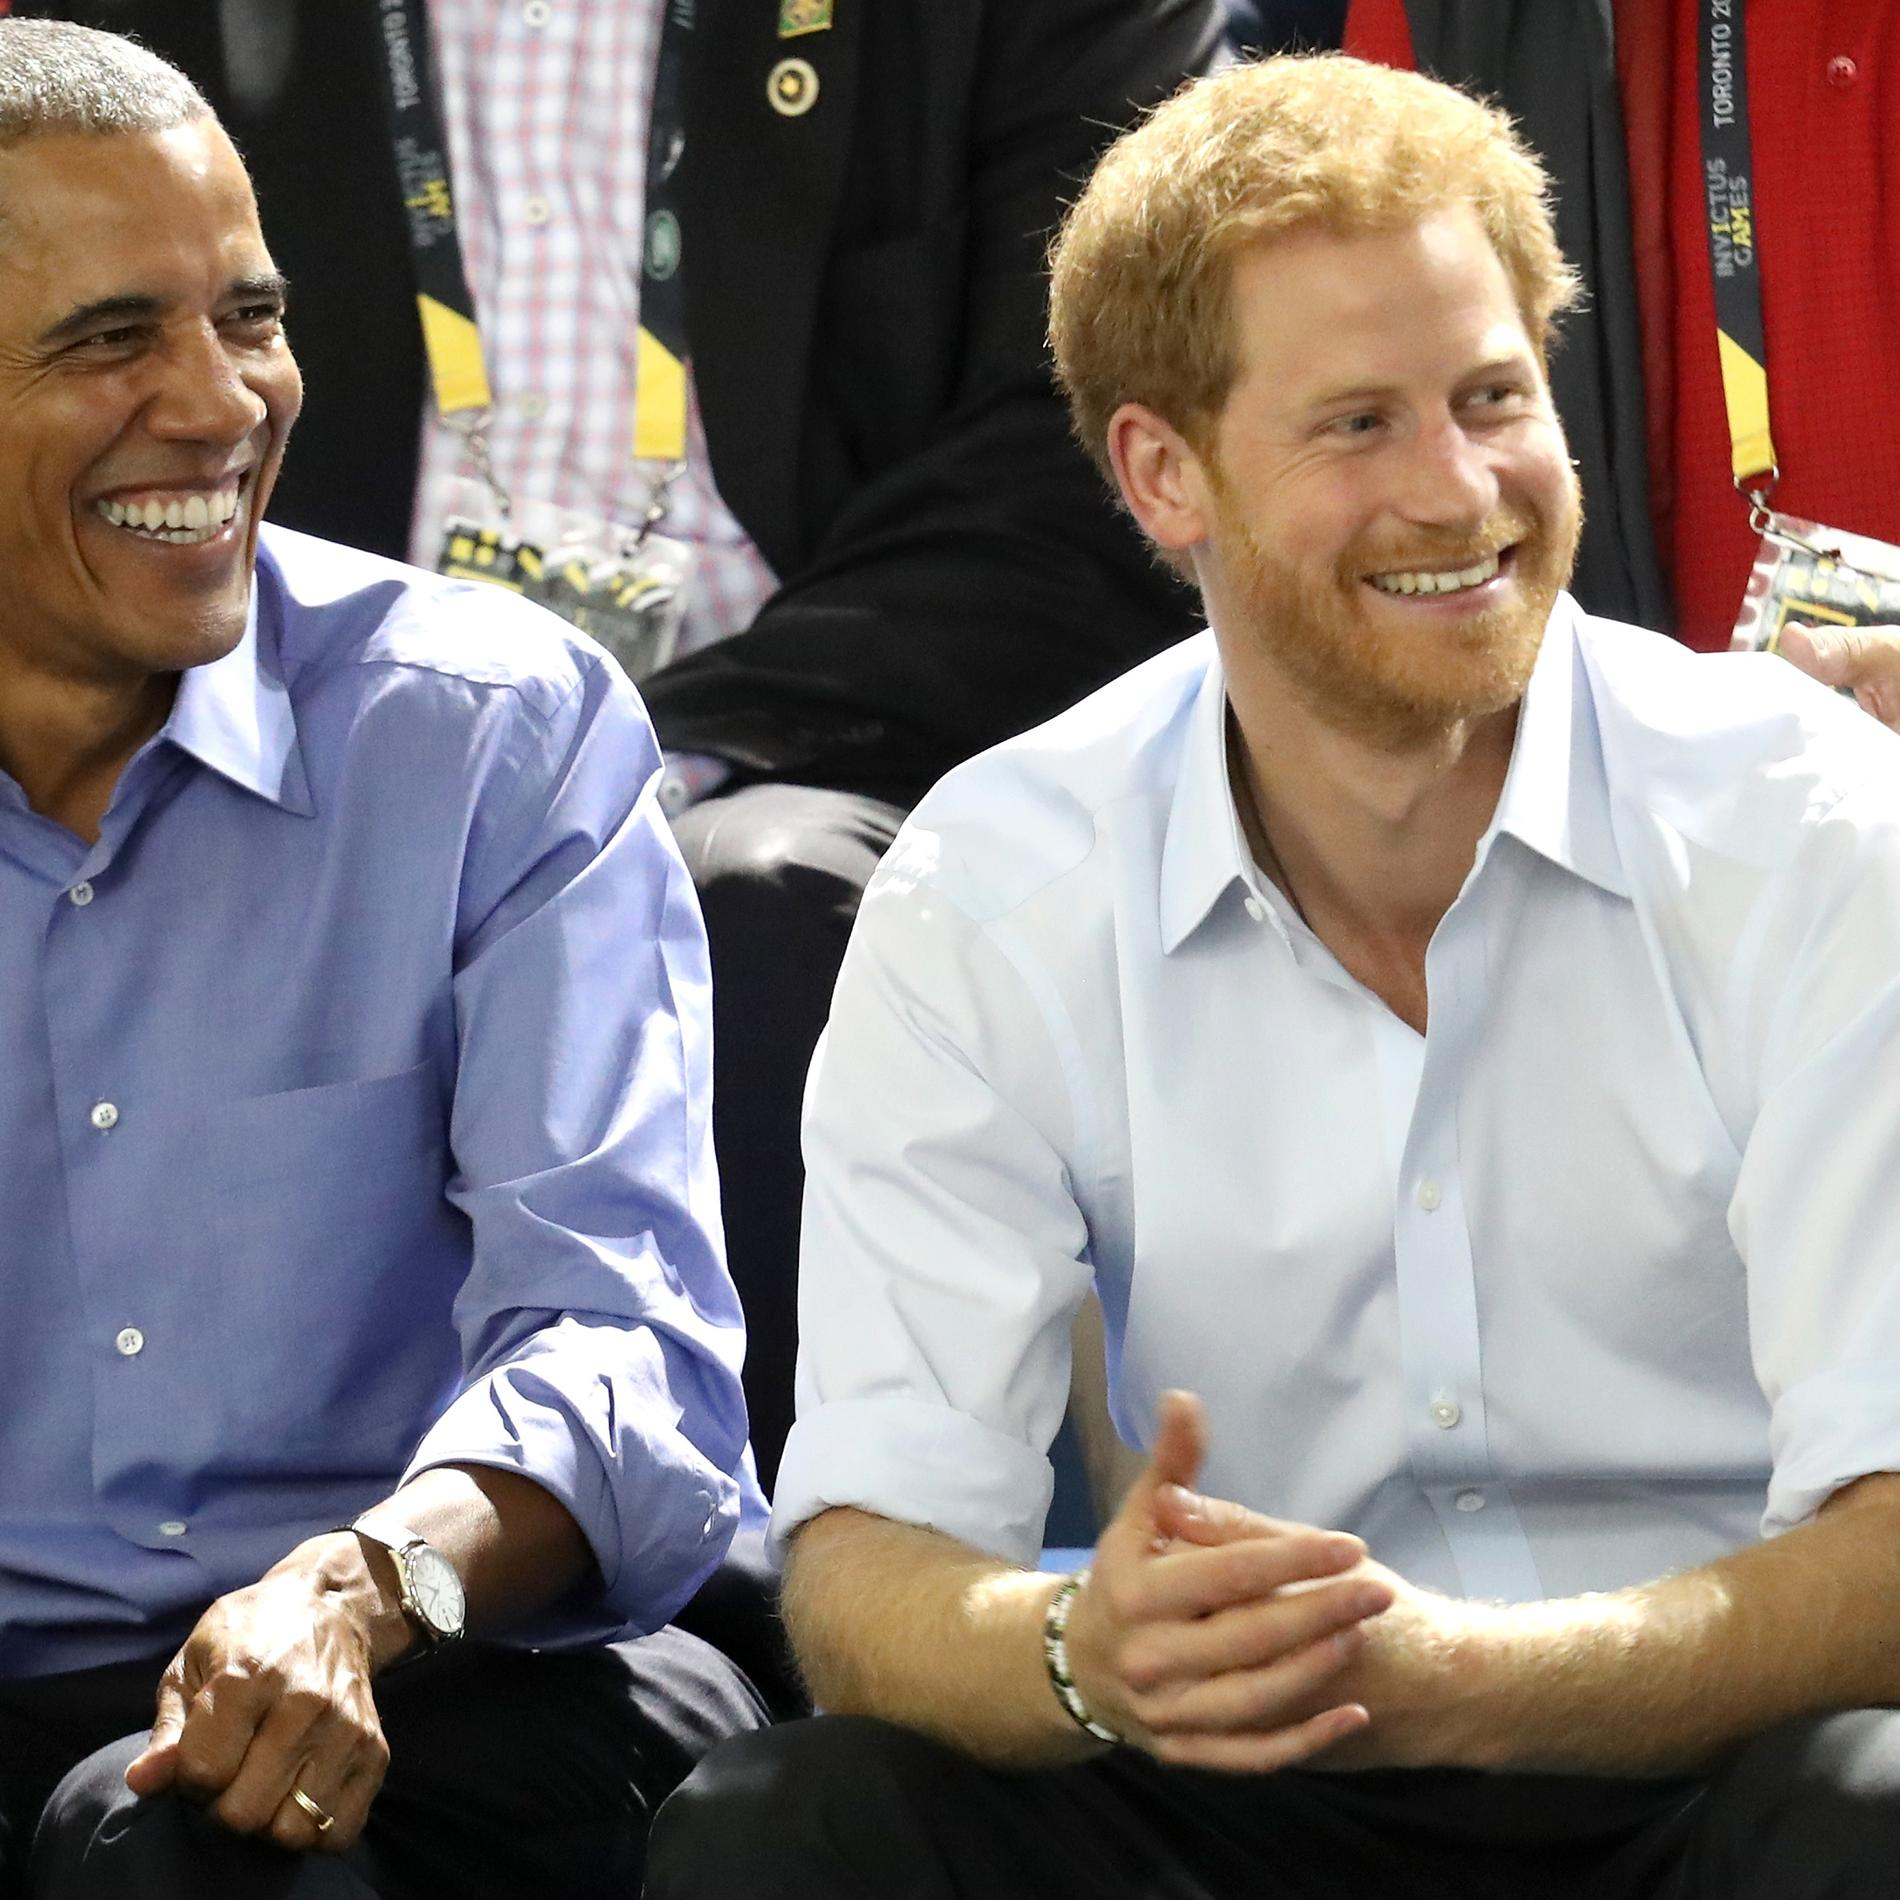 Le prince Harry et Barack Obama